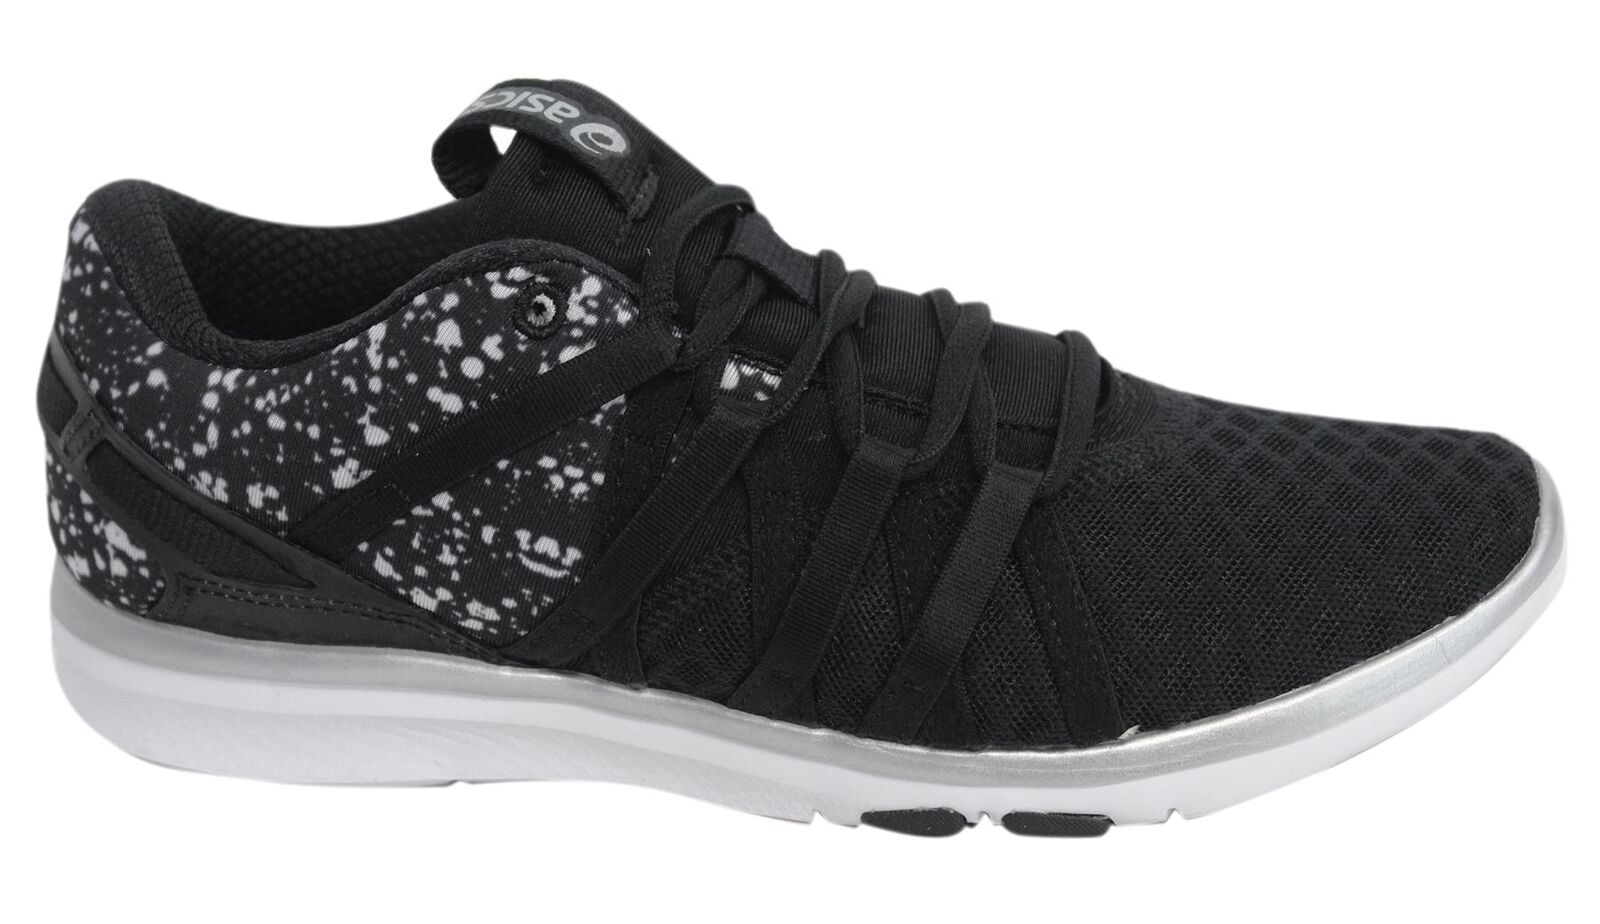 Asics Asics Asics Gel-Fit Yui Black Lace Up Womens Textile Trainers S750N 9093 U18 06117e